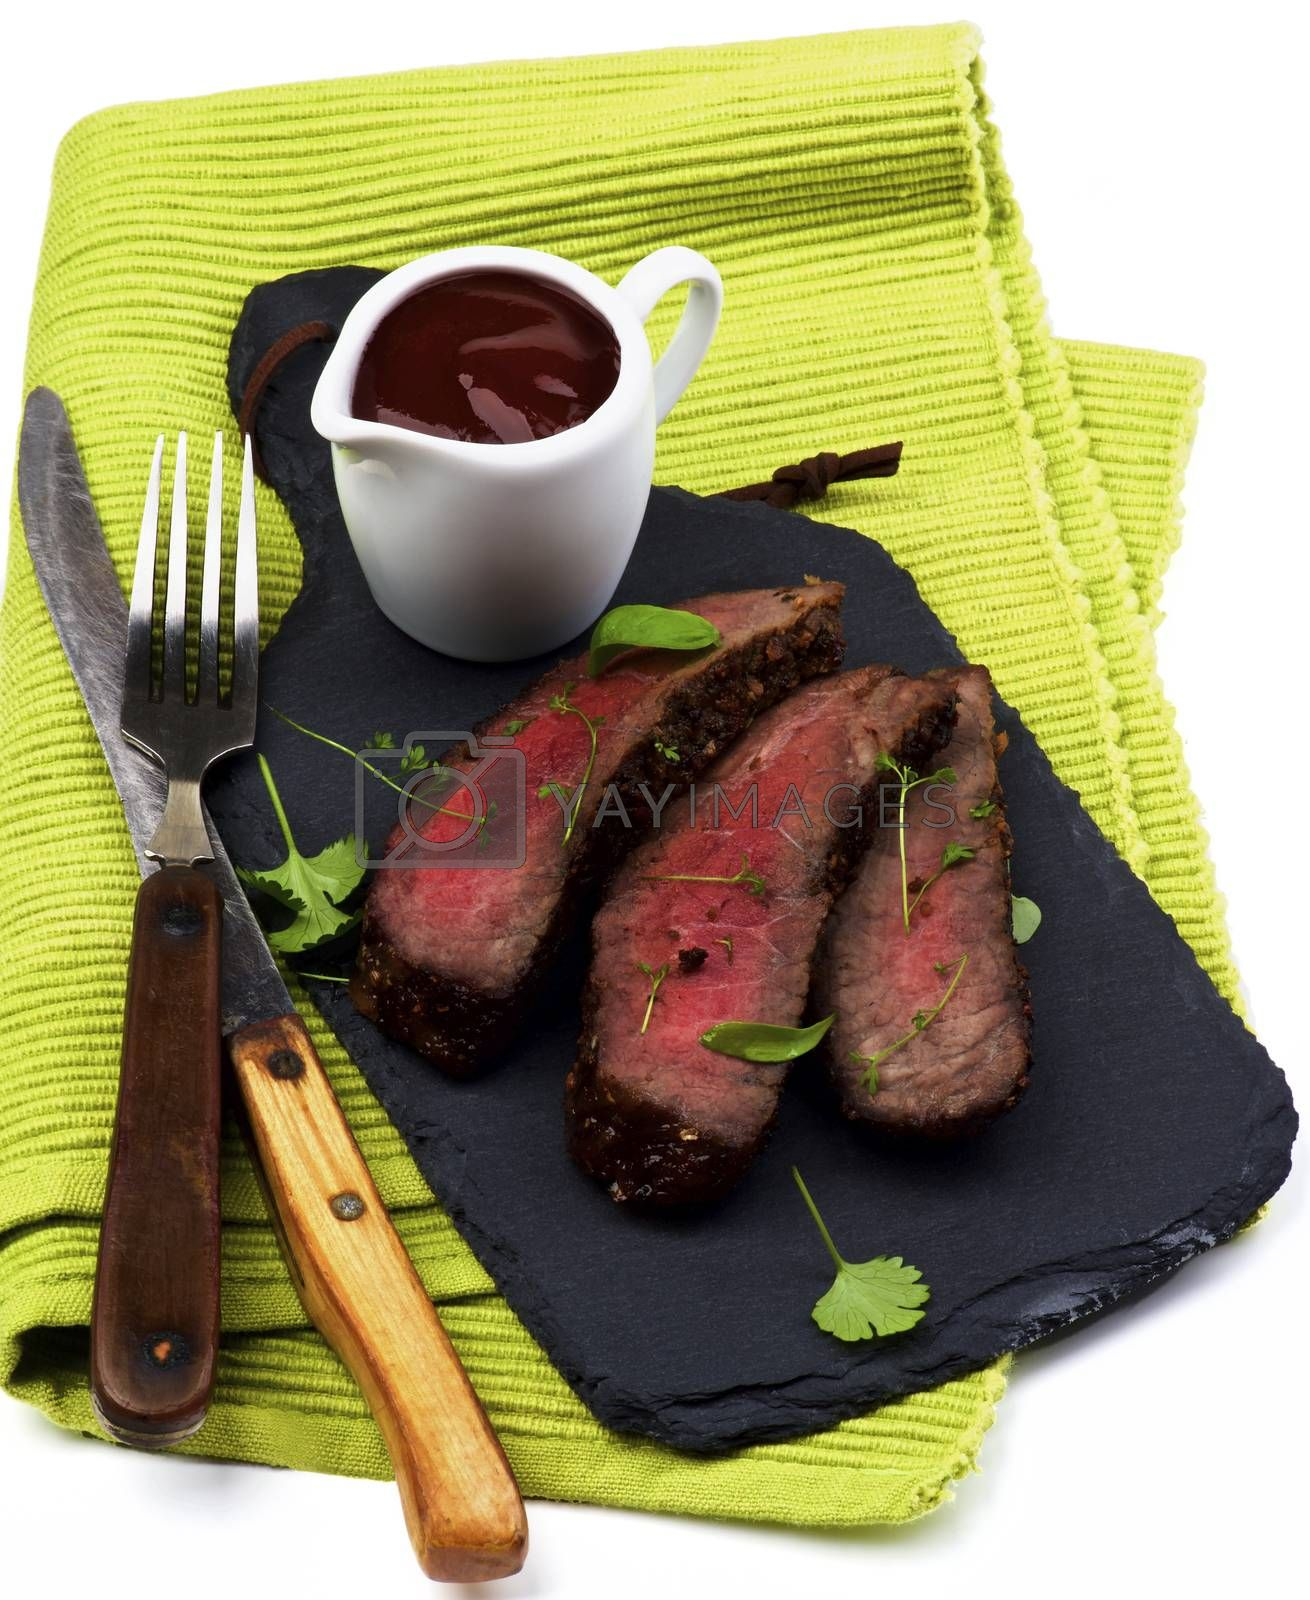 Slices of Delicious Roast Beef Medium Rare on Slate Serving Board with Tomato Sauce, Fork and Table Knife closeup on Green Napkin